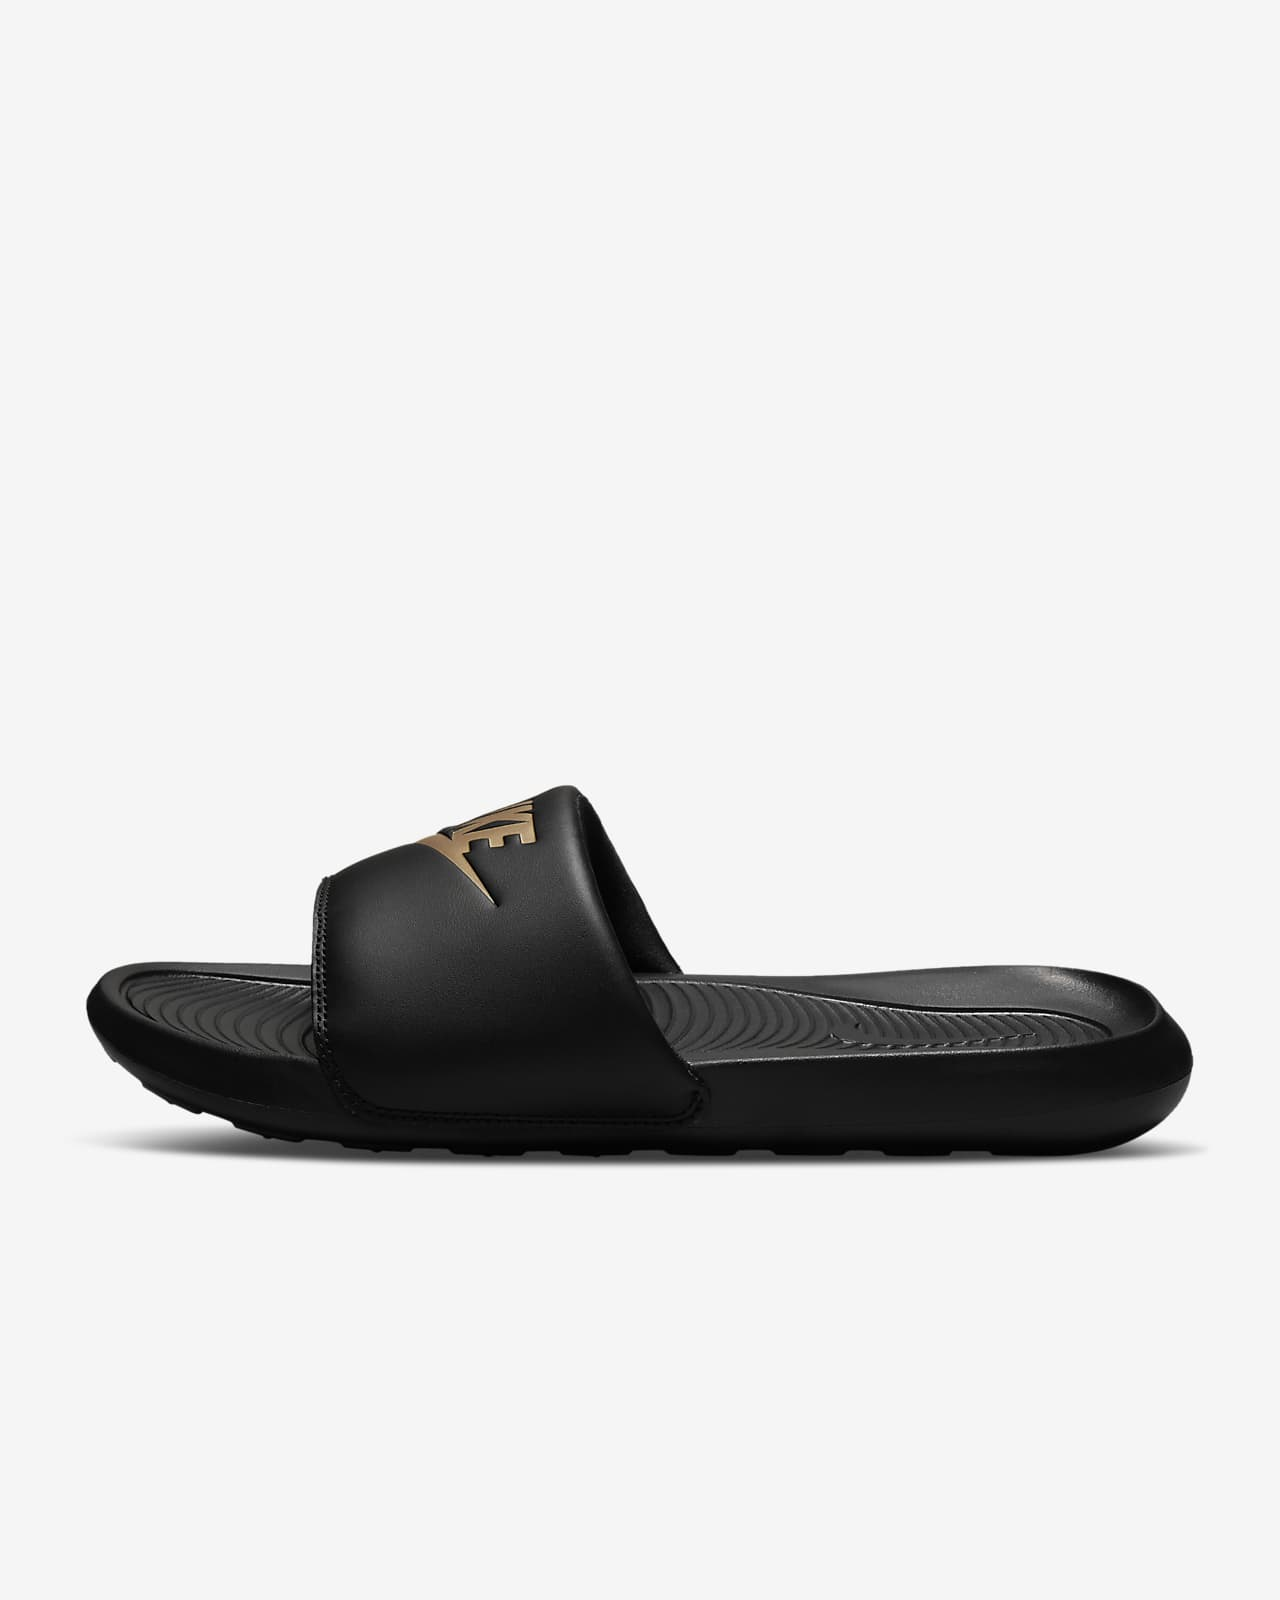 Nike Victori One Men's Slide